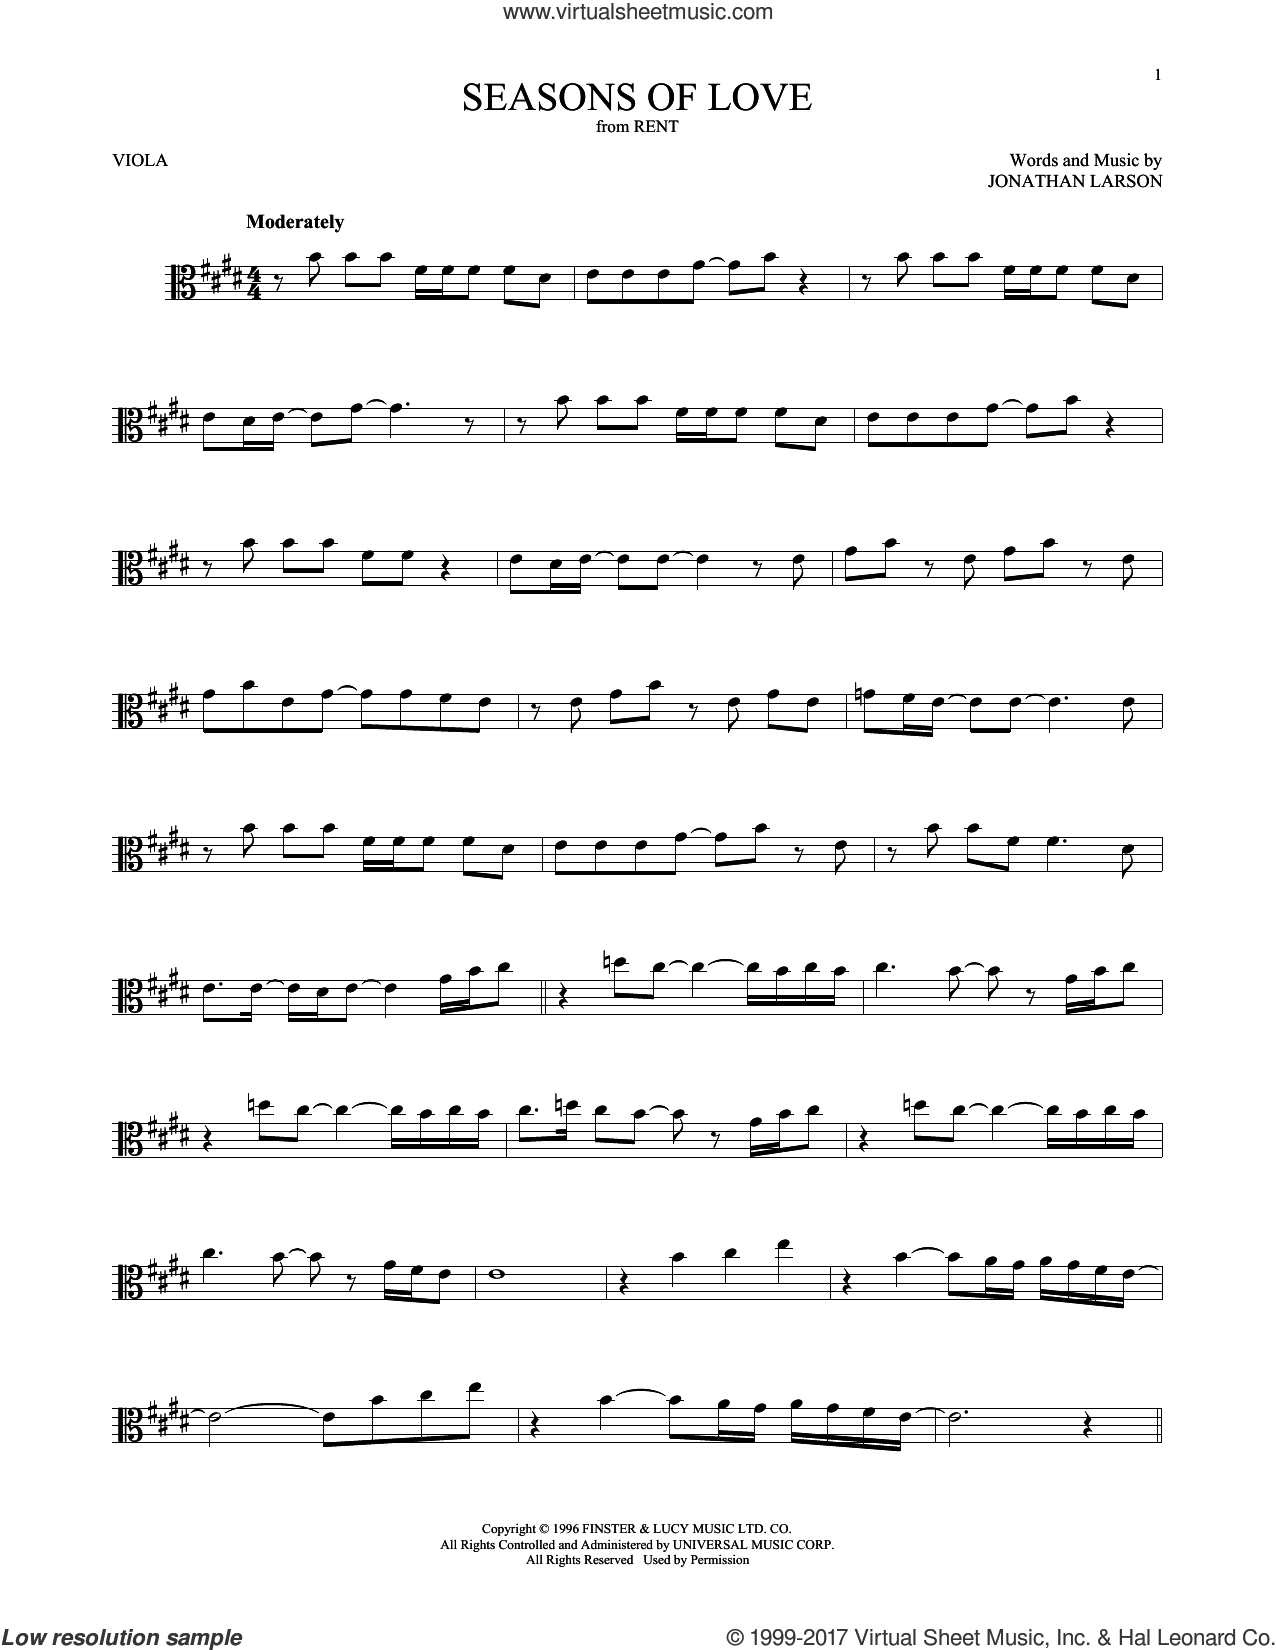 Seasons Of Love (from Rent) sheet music for viola solo by Jonathan Larson, intermediate skill level